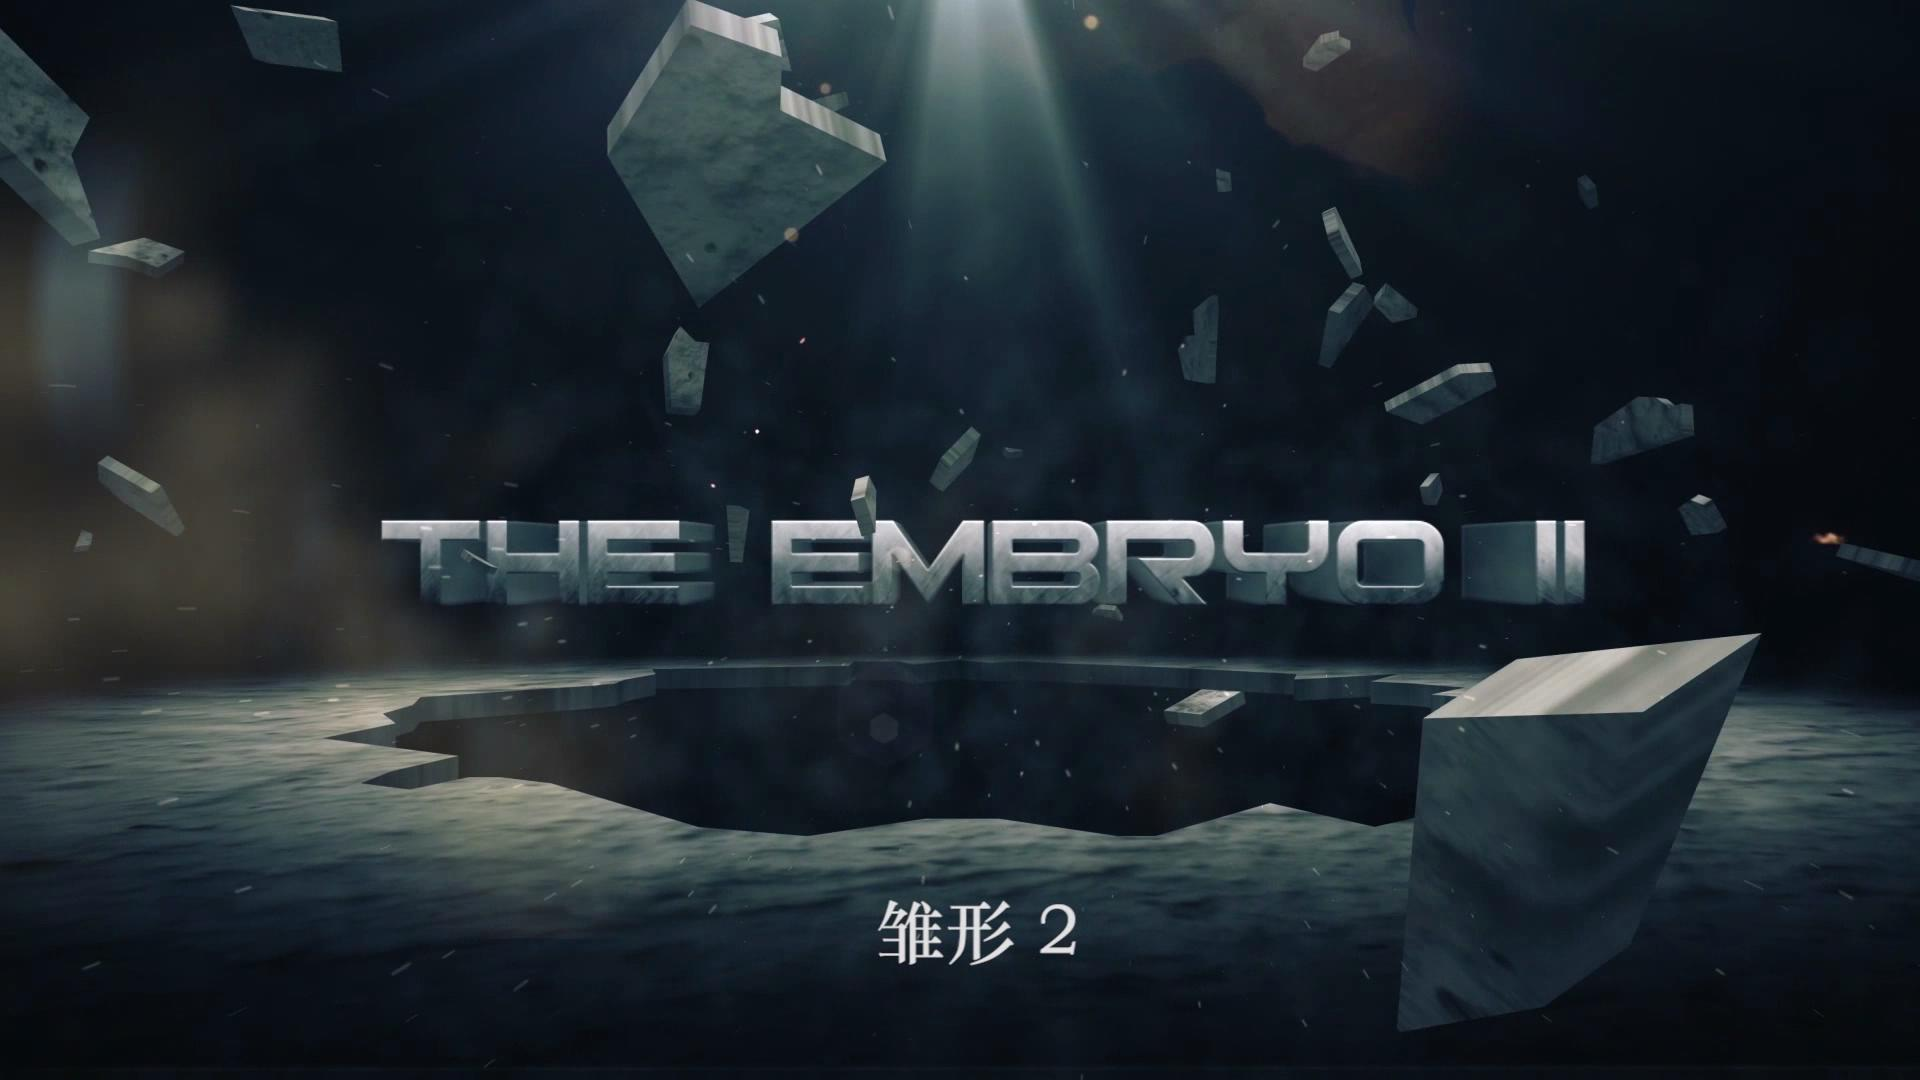 THE EMBRYO II-1